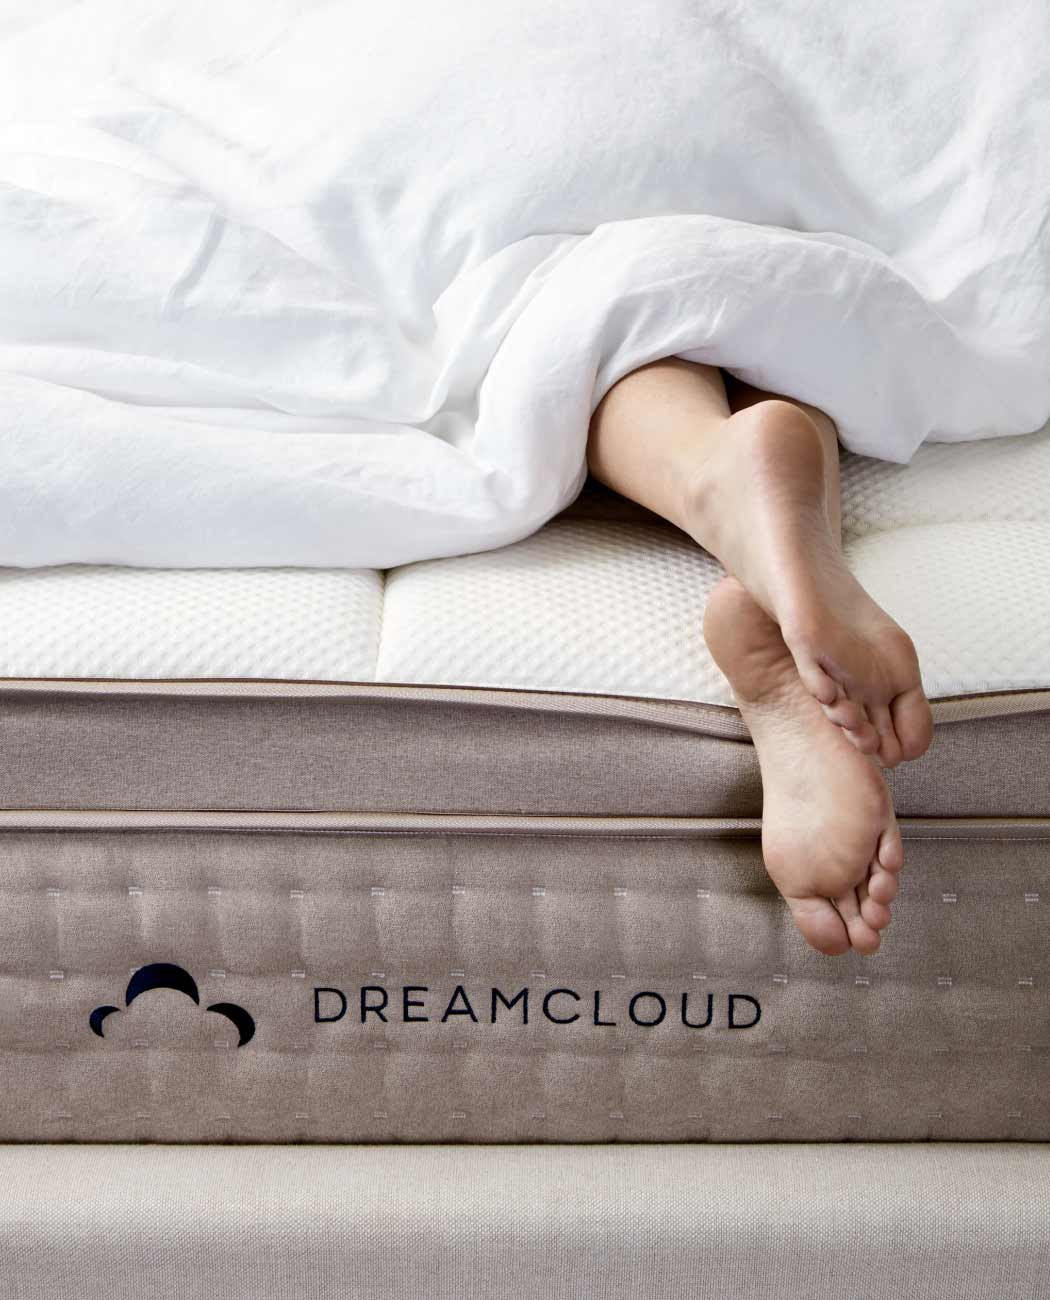 DreamCloud Review